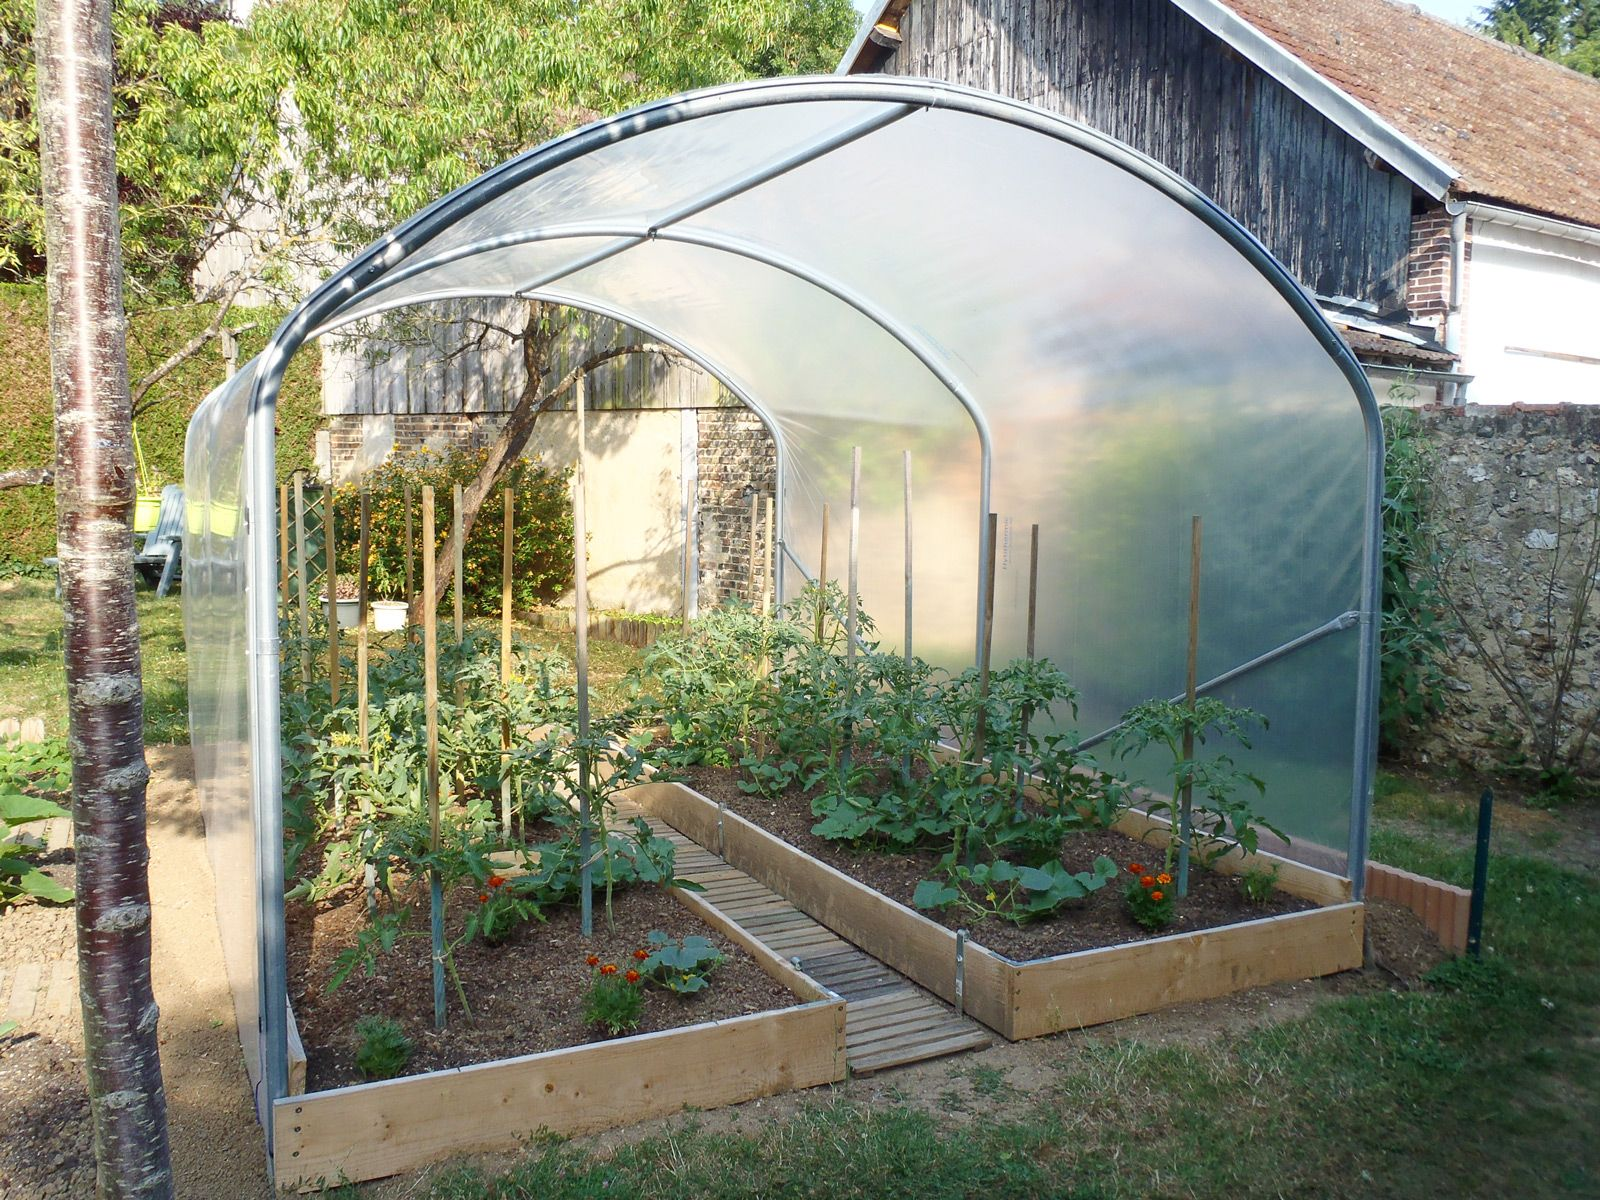 Serre Tunnel Fait Maison Serre à Tomates Larg 3 M Building Projects Diy Crafts Serre